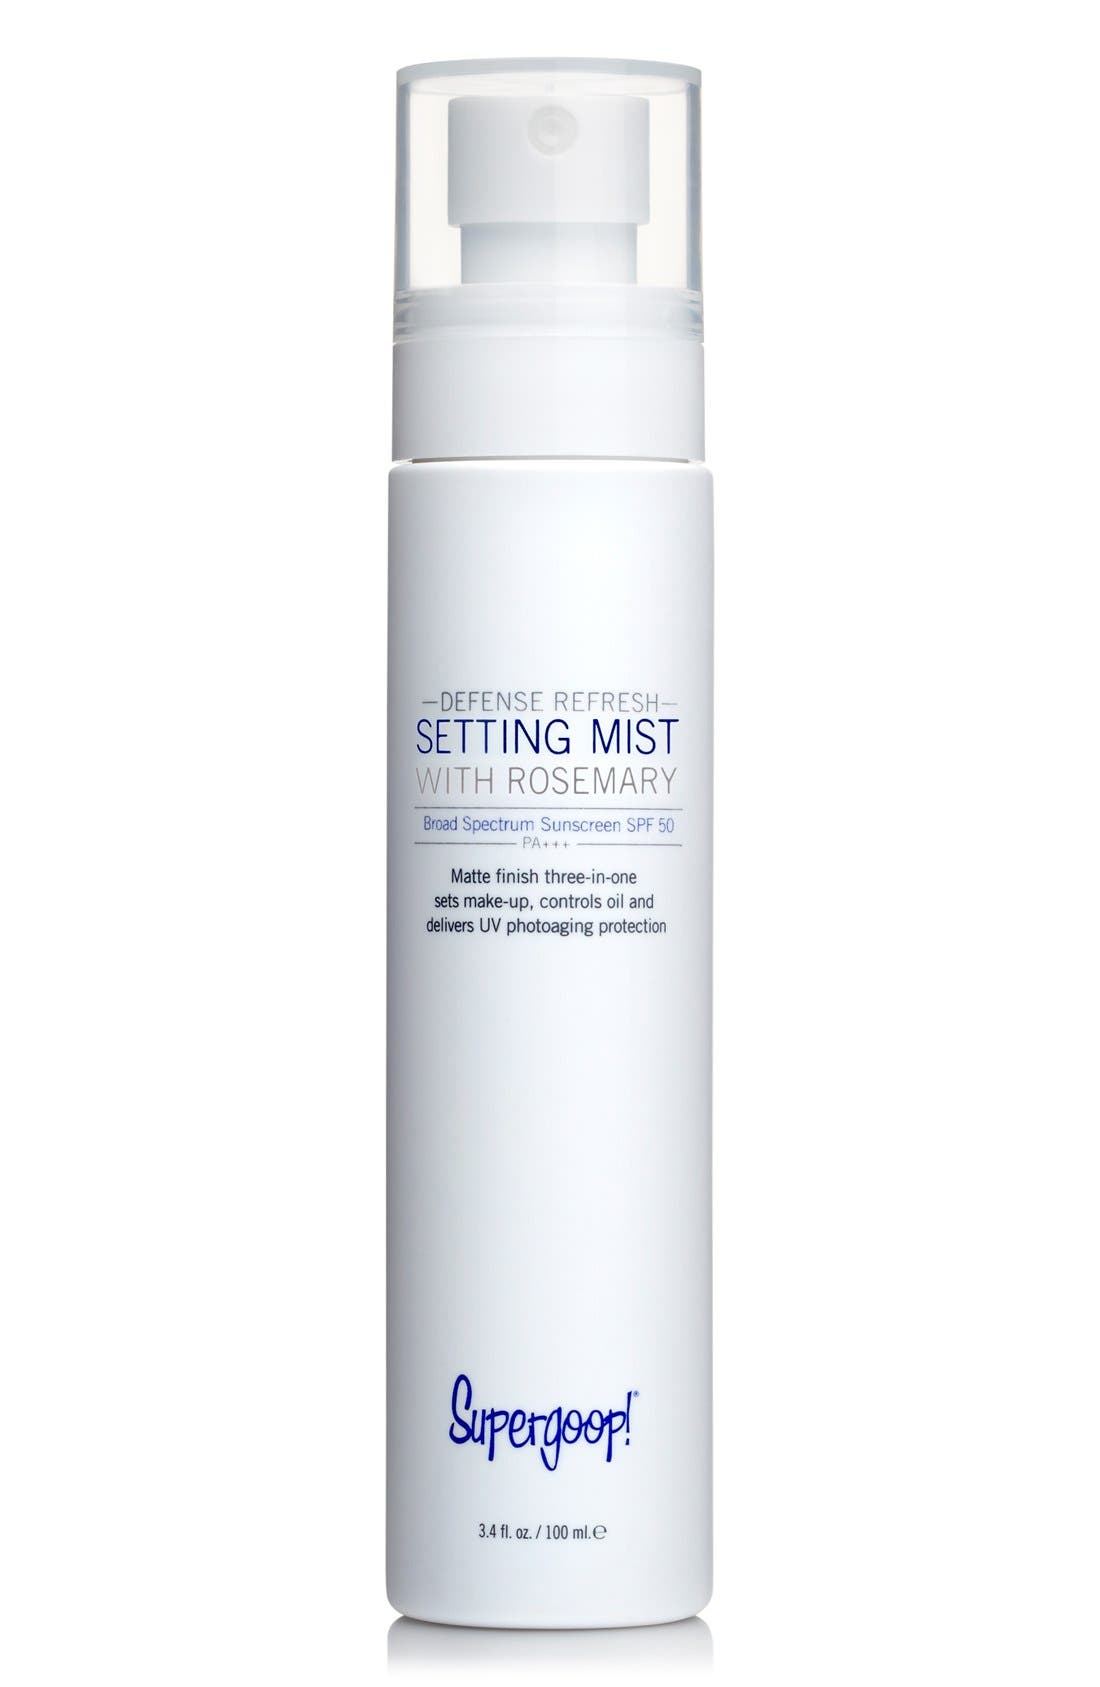 Supergoop! 'Defense Refresh' Setting Mist with Rosemary SPF 50,                             Main thumbnail 1, color,                             NO COLOR